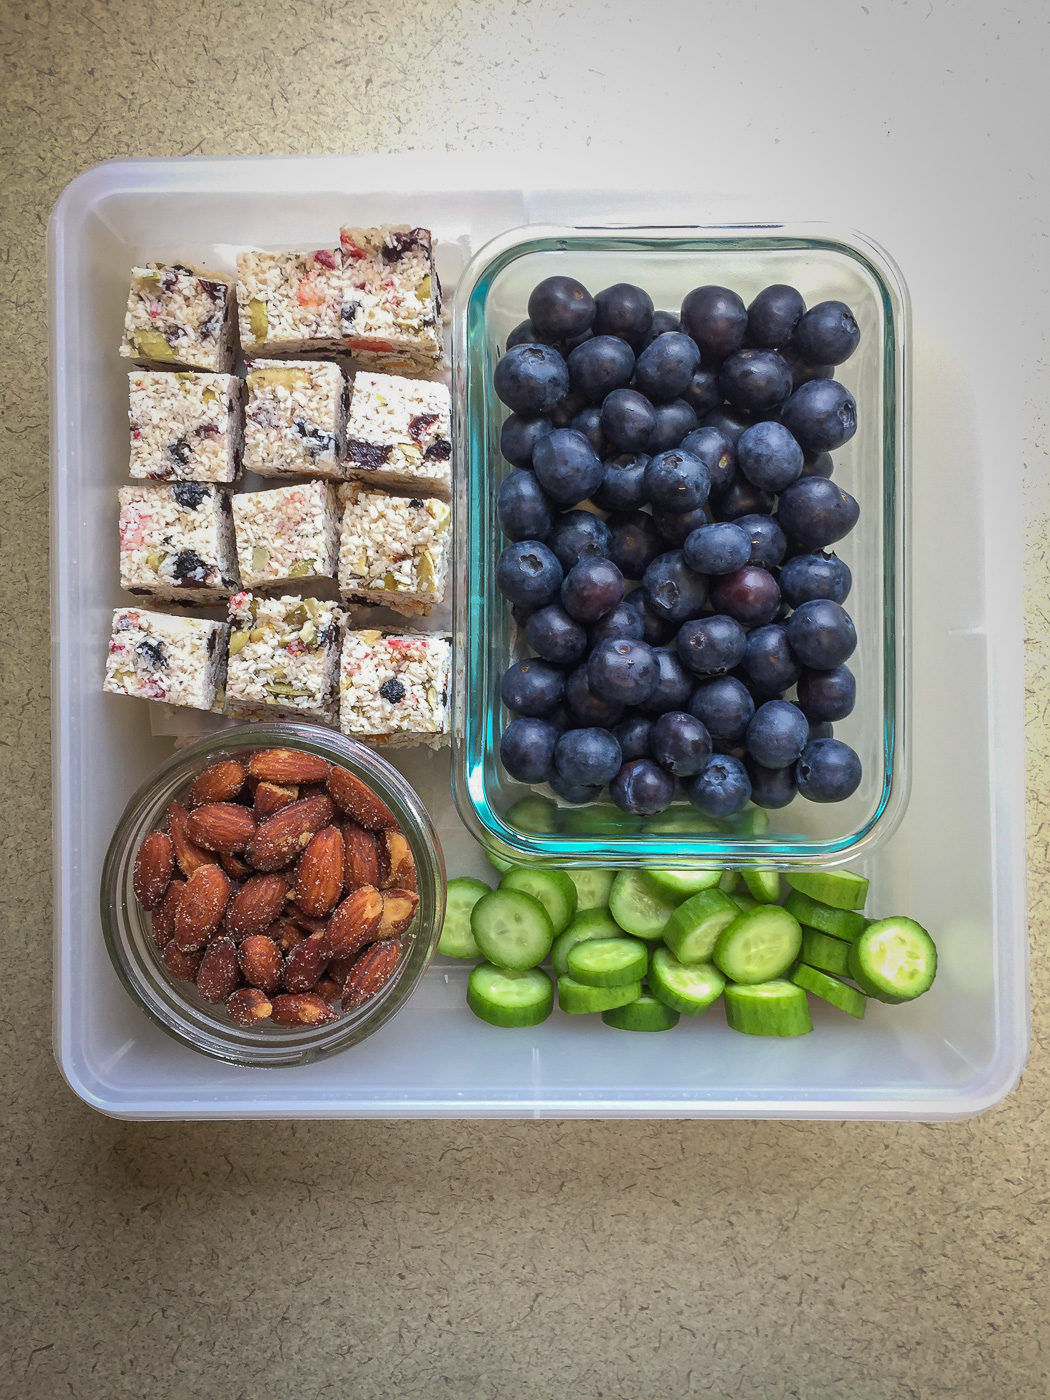 Square plastic container with blueberries, coconut bites, cucumber slices and almonds